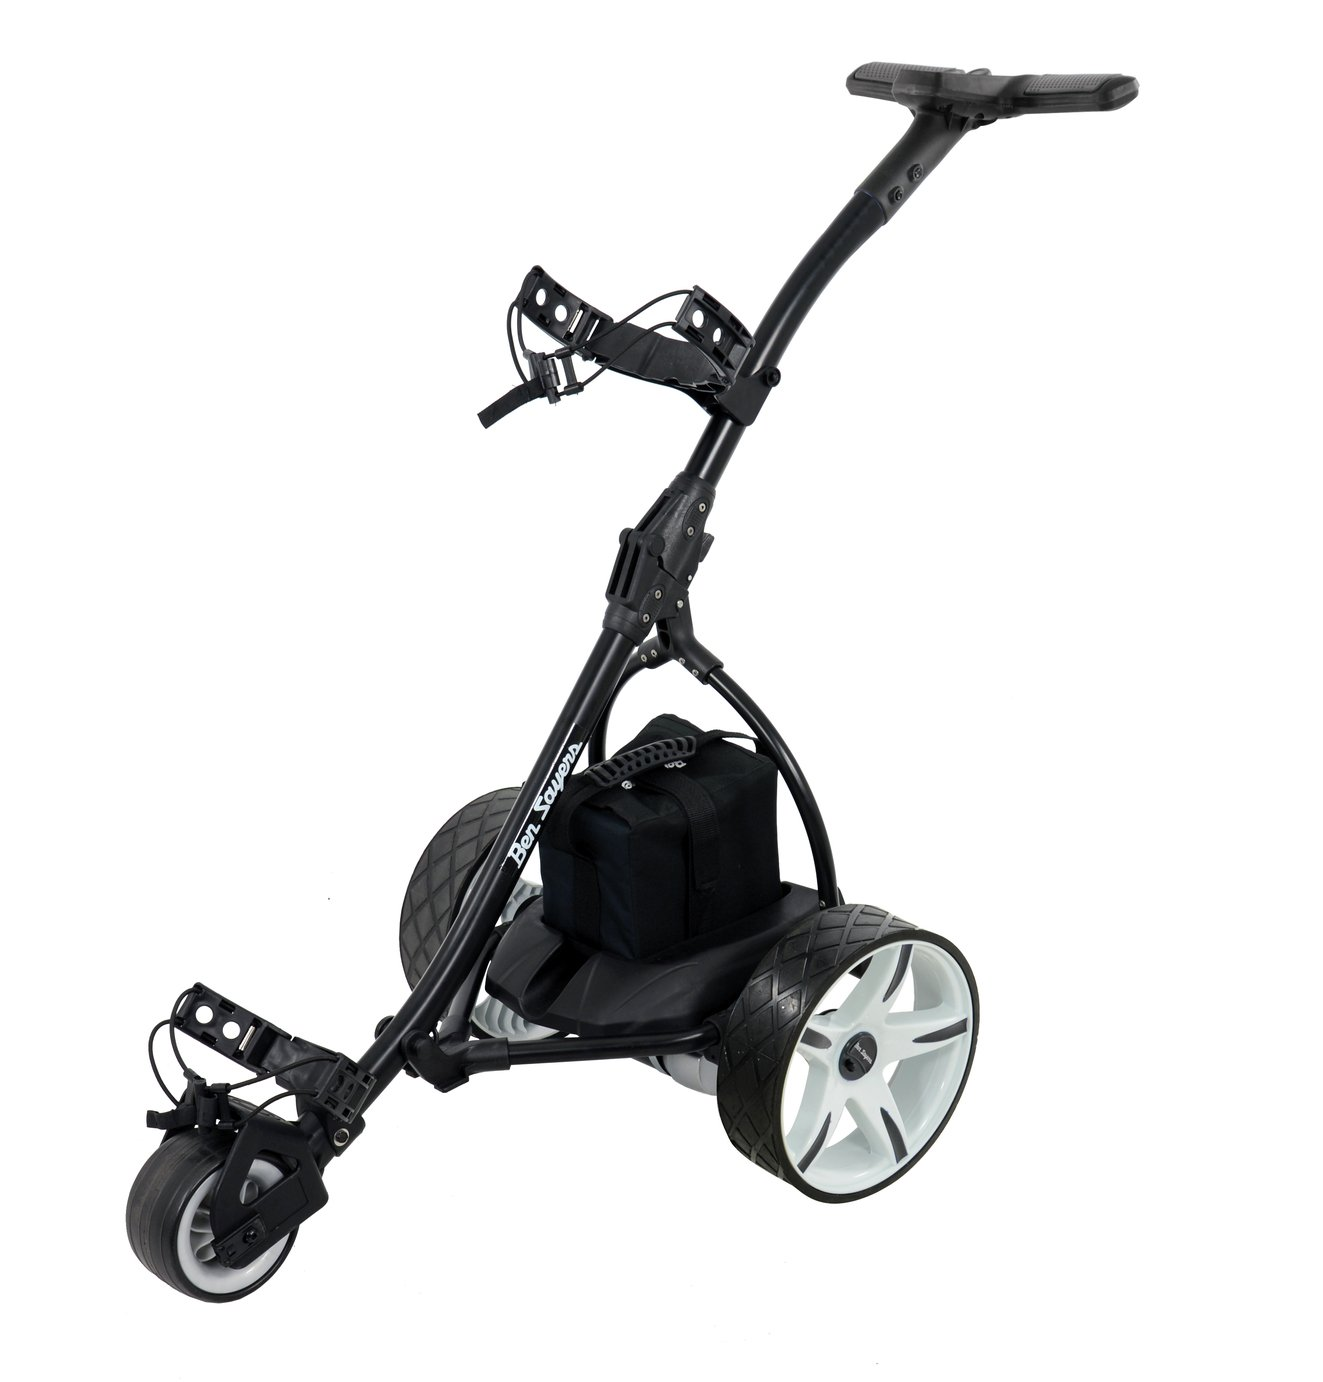 Ben Sayers Golf Lead Acid Battery Electric Trolley